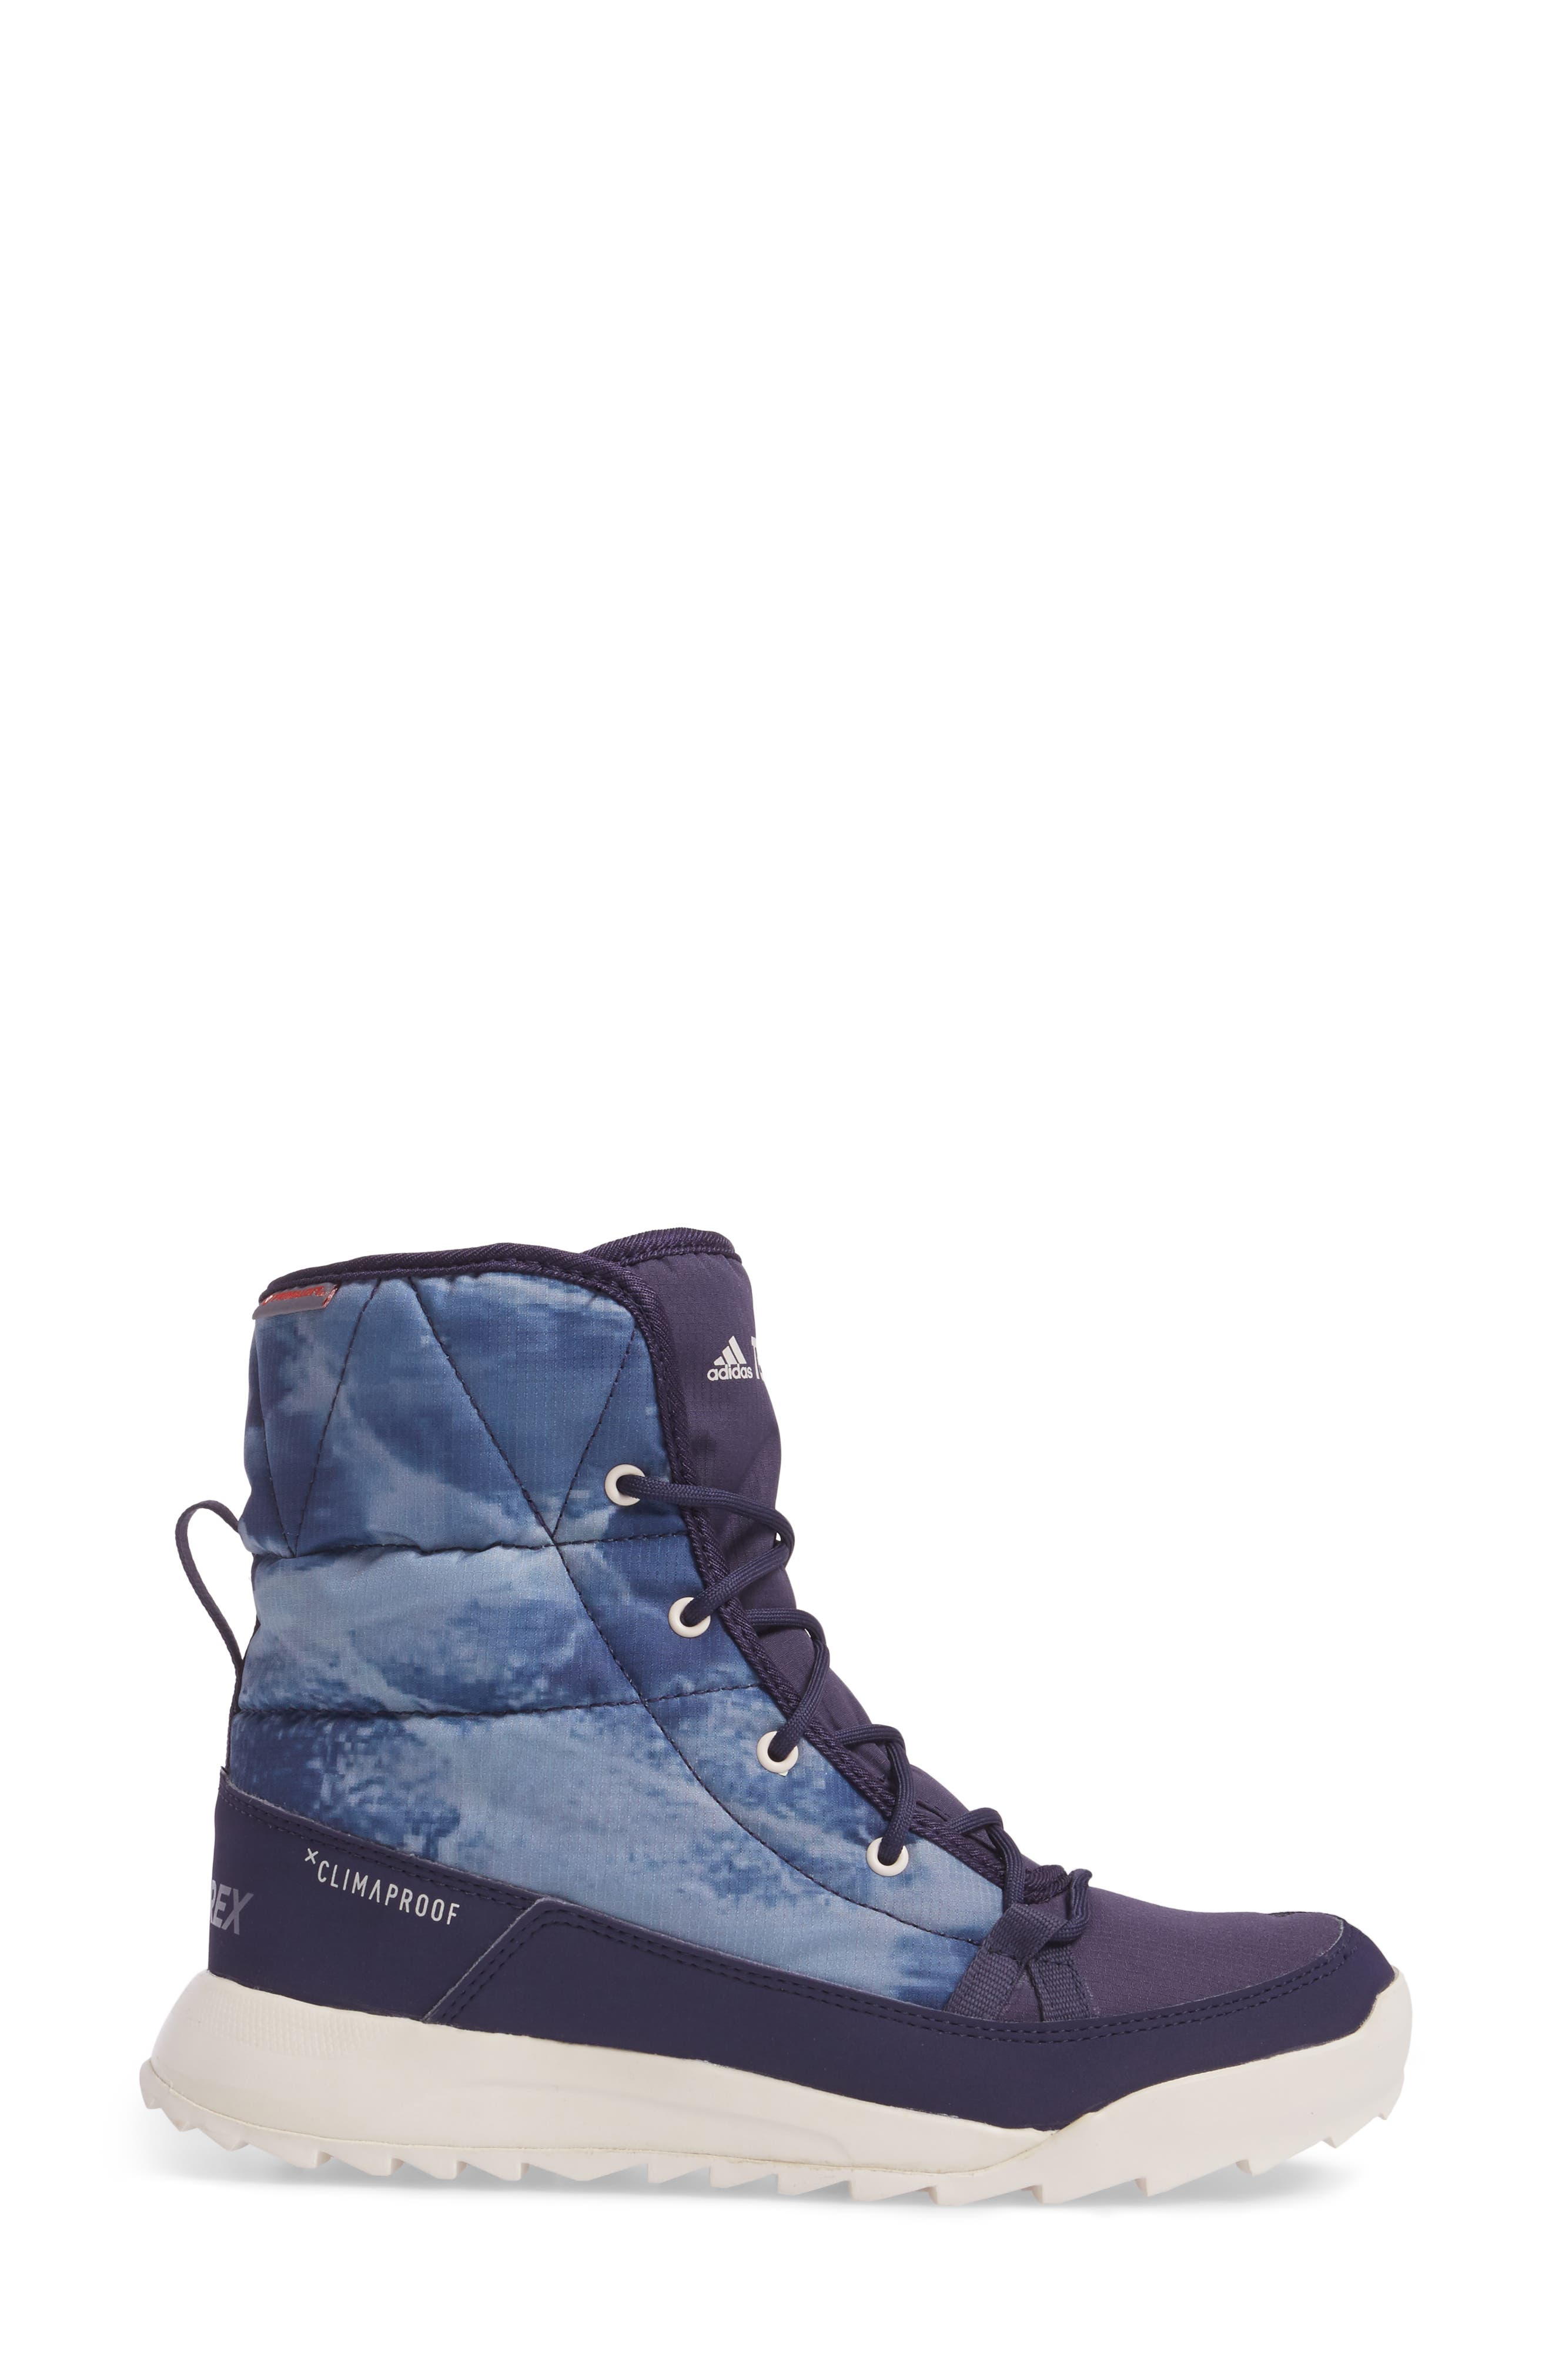 Alternate Image 3  - adidas Terrex Choleah Waterproof Boot (Women)